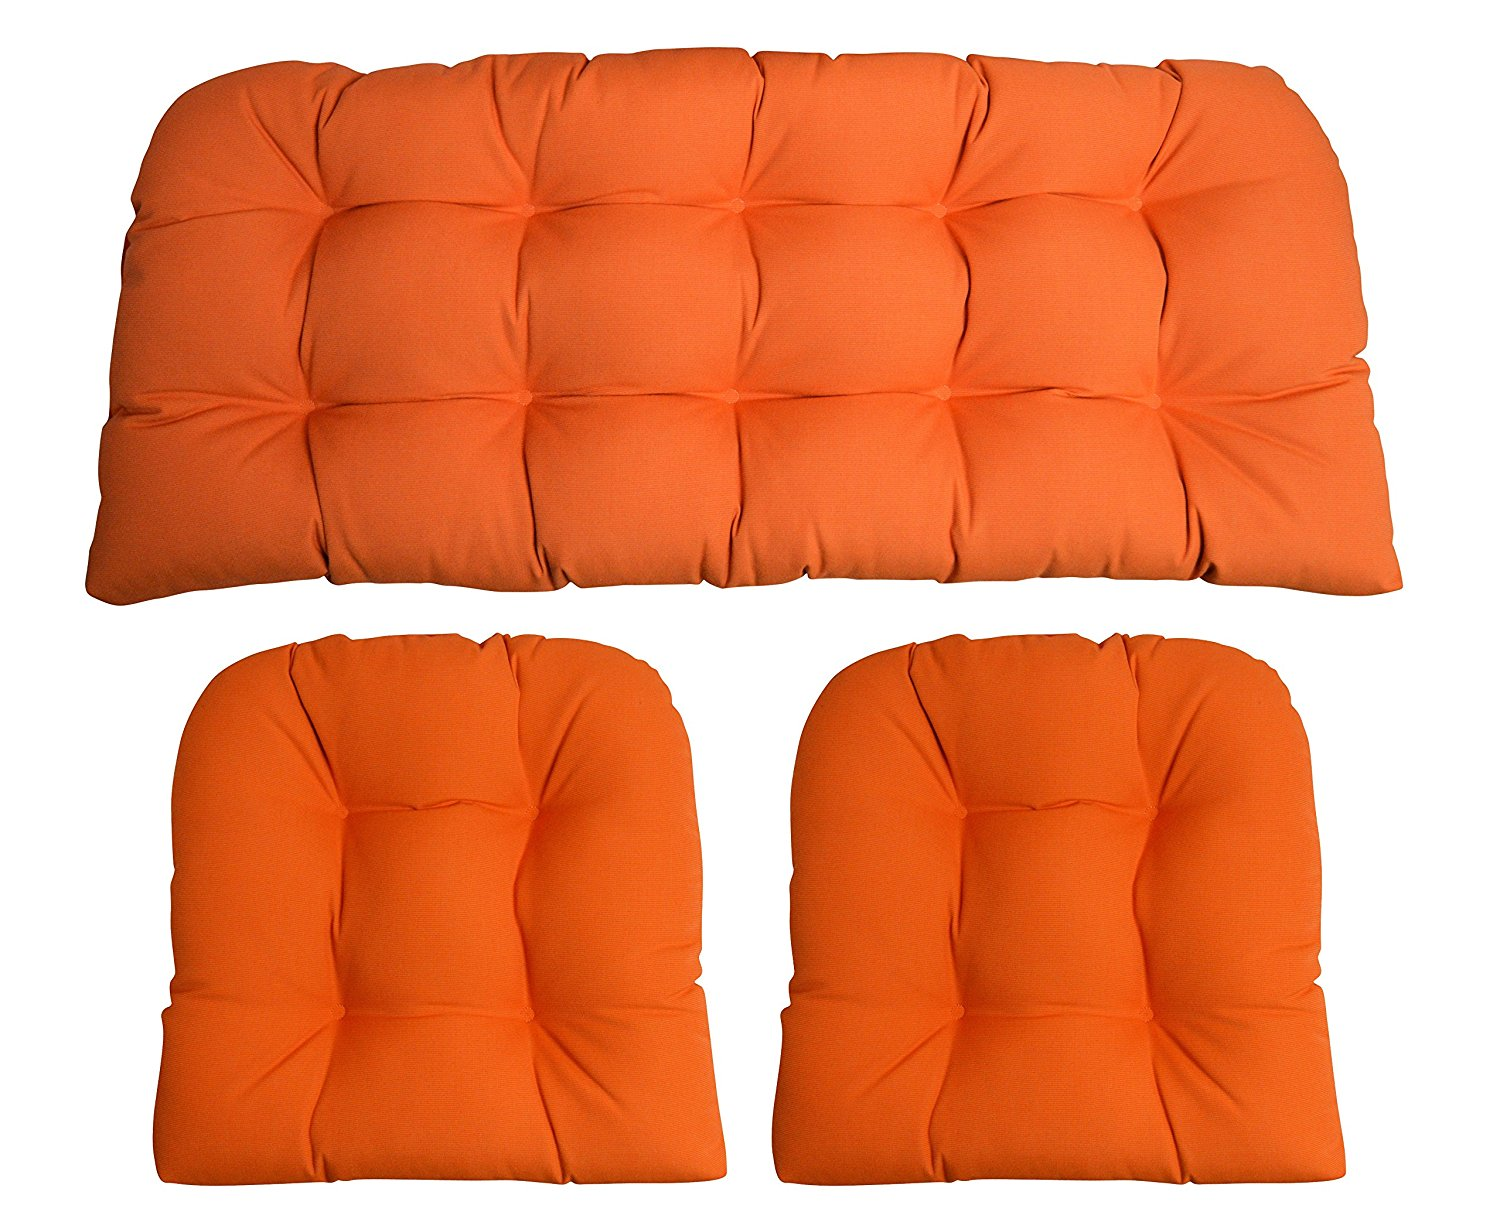 Sunbrella Canvas Tangerine Orange 3 Piece Wicker Cushion Set - Indoor / Outdoor Wicker Loveseat Settee & 2 Matching Chair Cushions